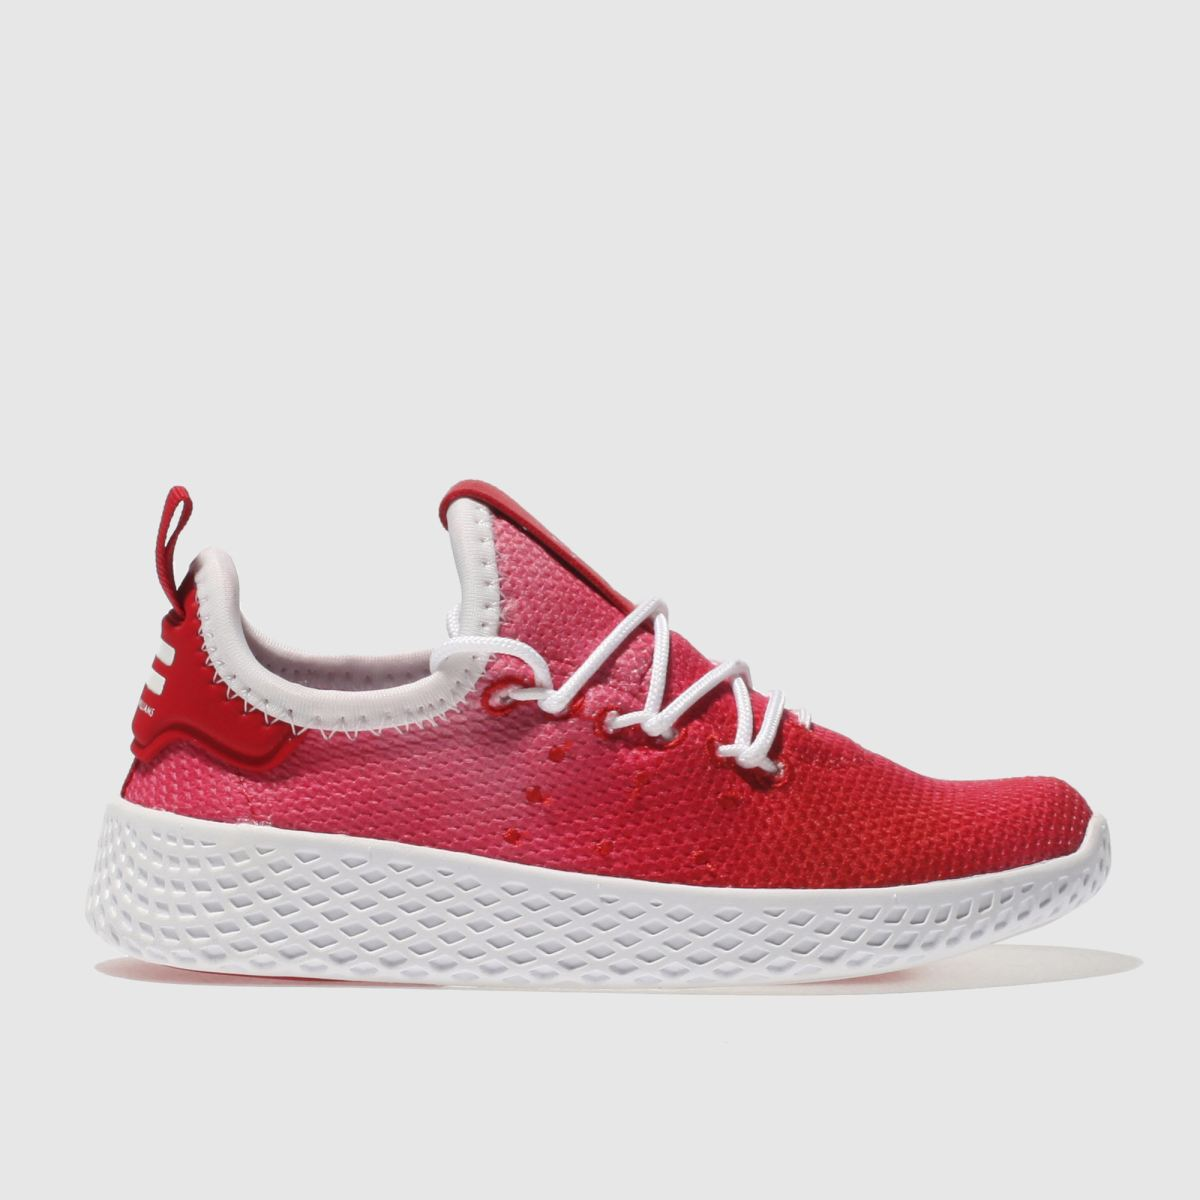 Adidas Red Tennis Pharrell Hu Holi Unisex Toddler Toddler